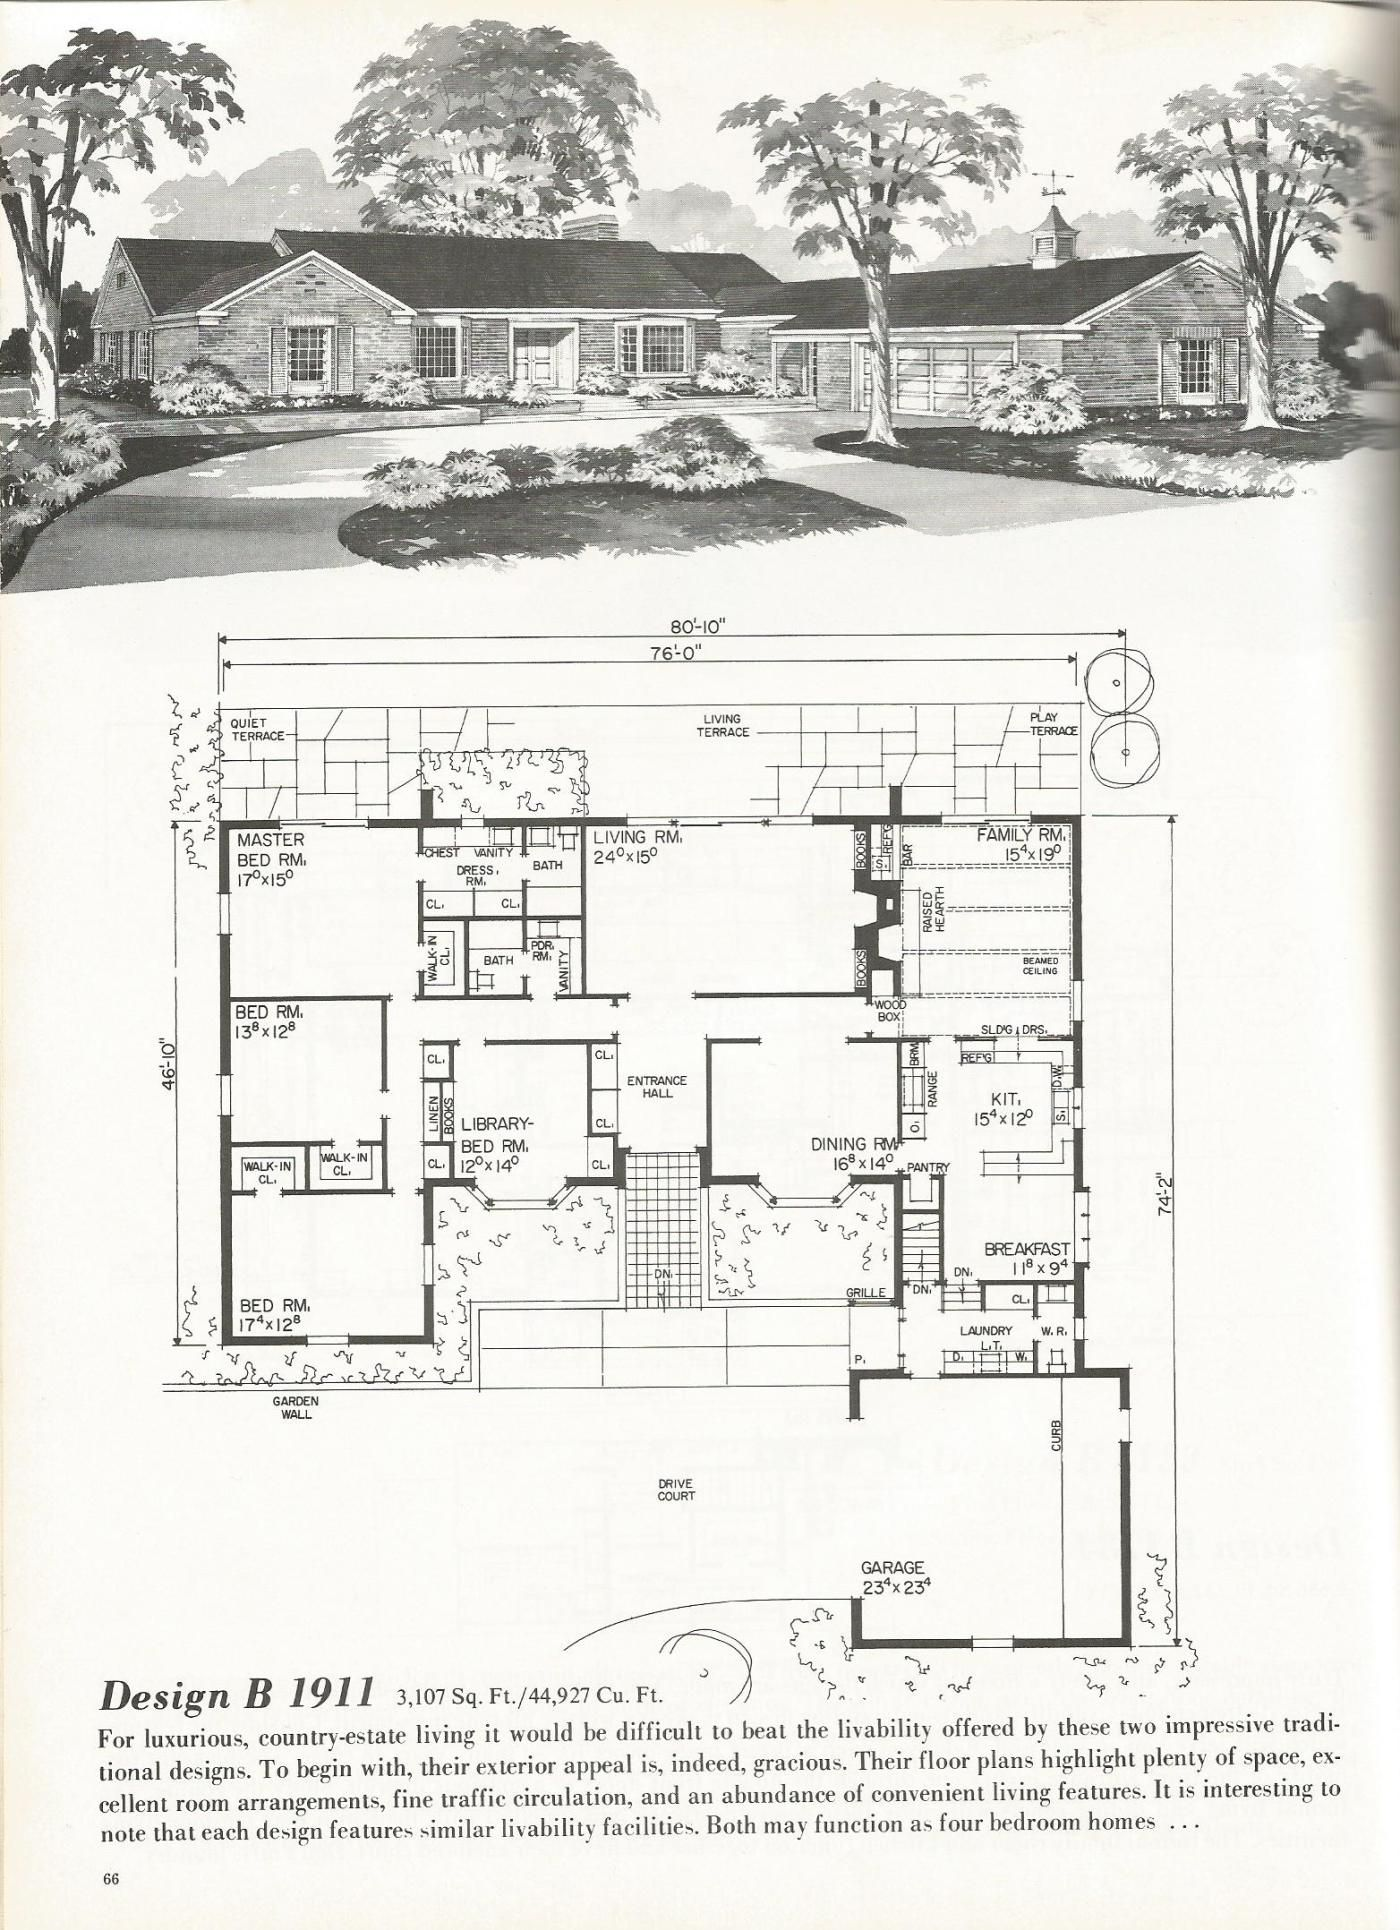 Vintage house plans luxurious homes antique alter ego for New house plans that look old